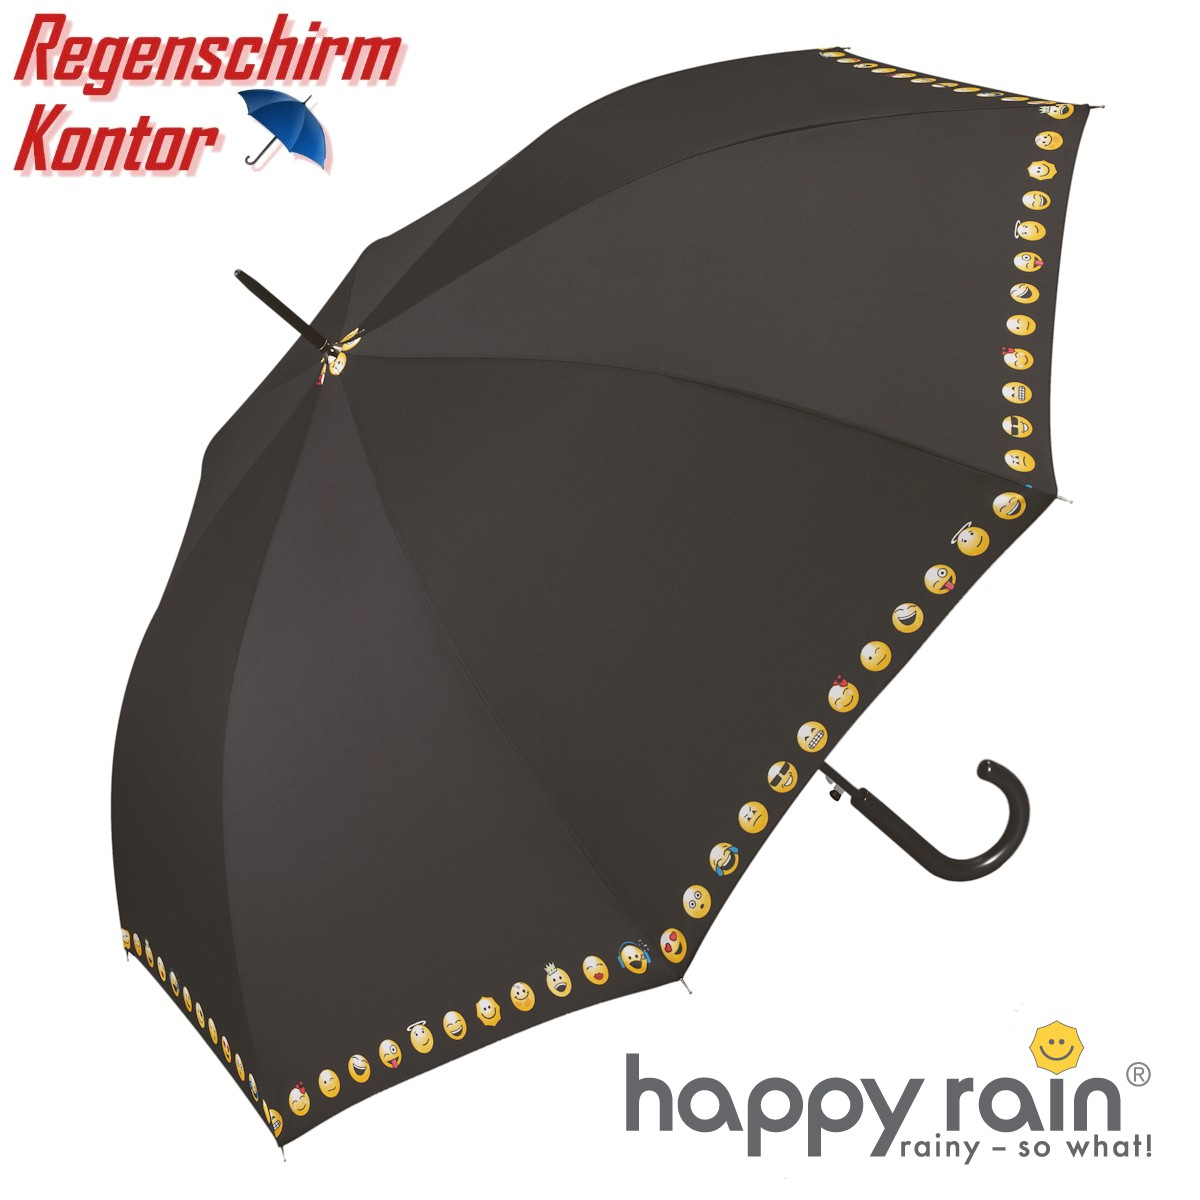 Stockschirm Damen Emoticon